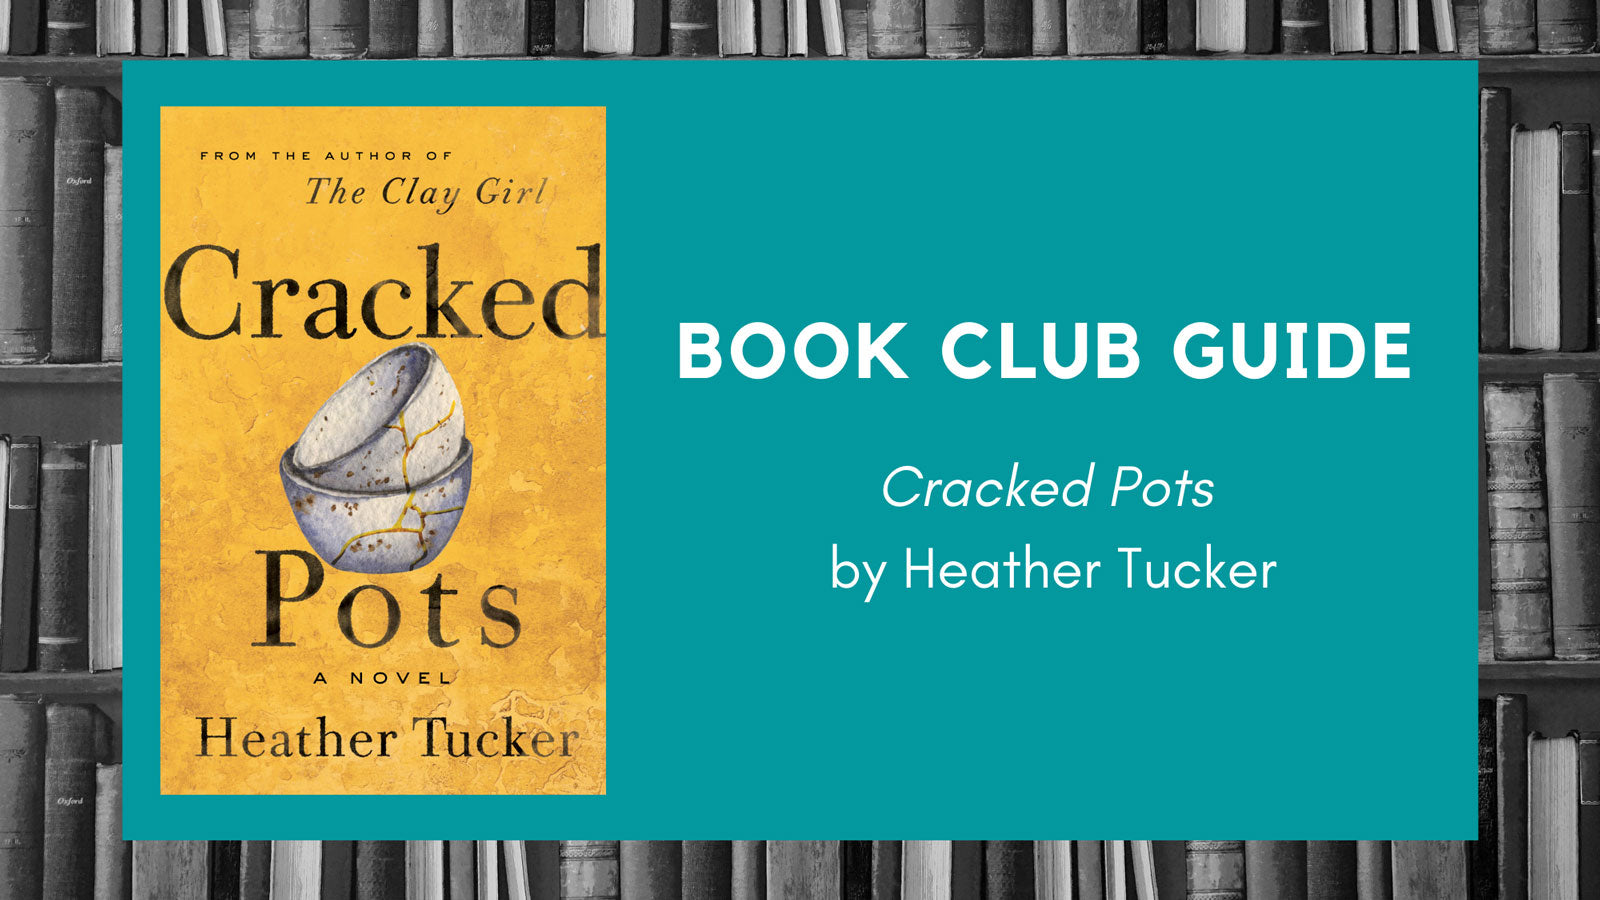 Book Club Guide: Cracked Pots by Heather Tucker